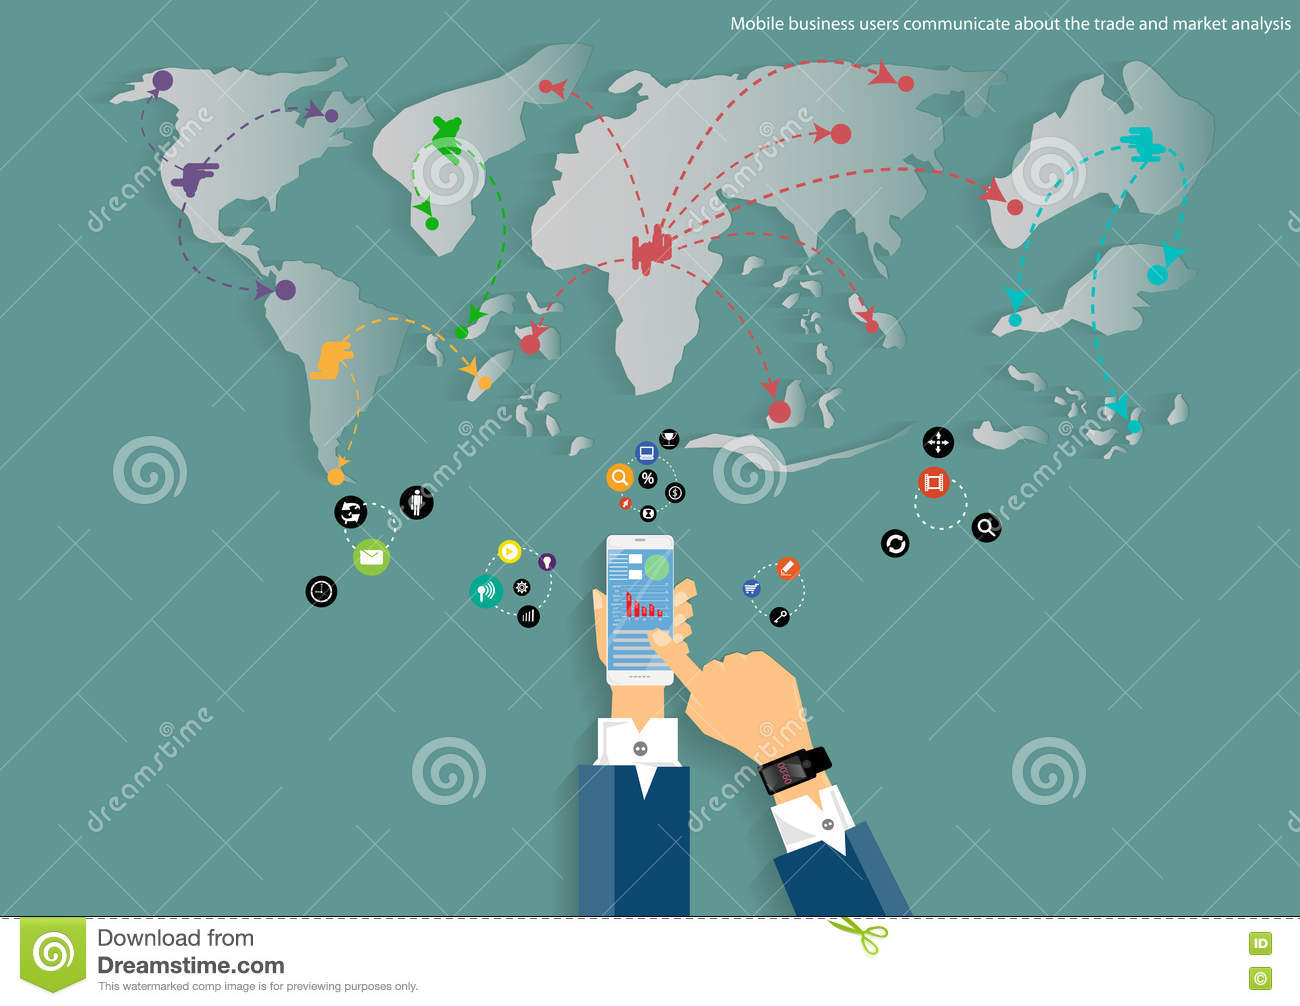 Vector mobile and travel the world map of business communication royalty free vector download vector mobile and travel the world map gumiabroncs